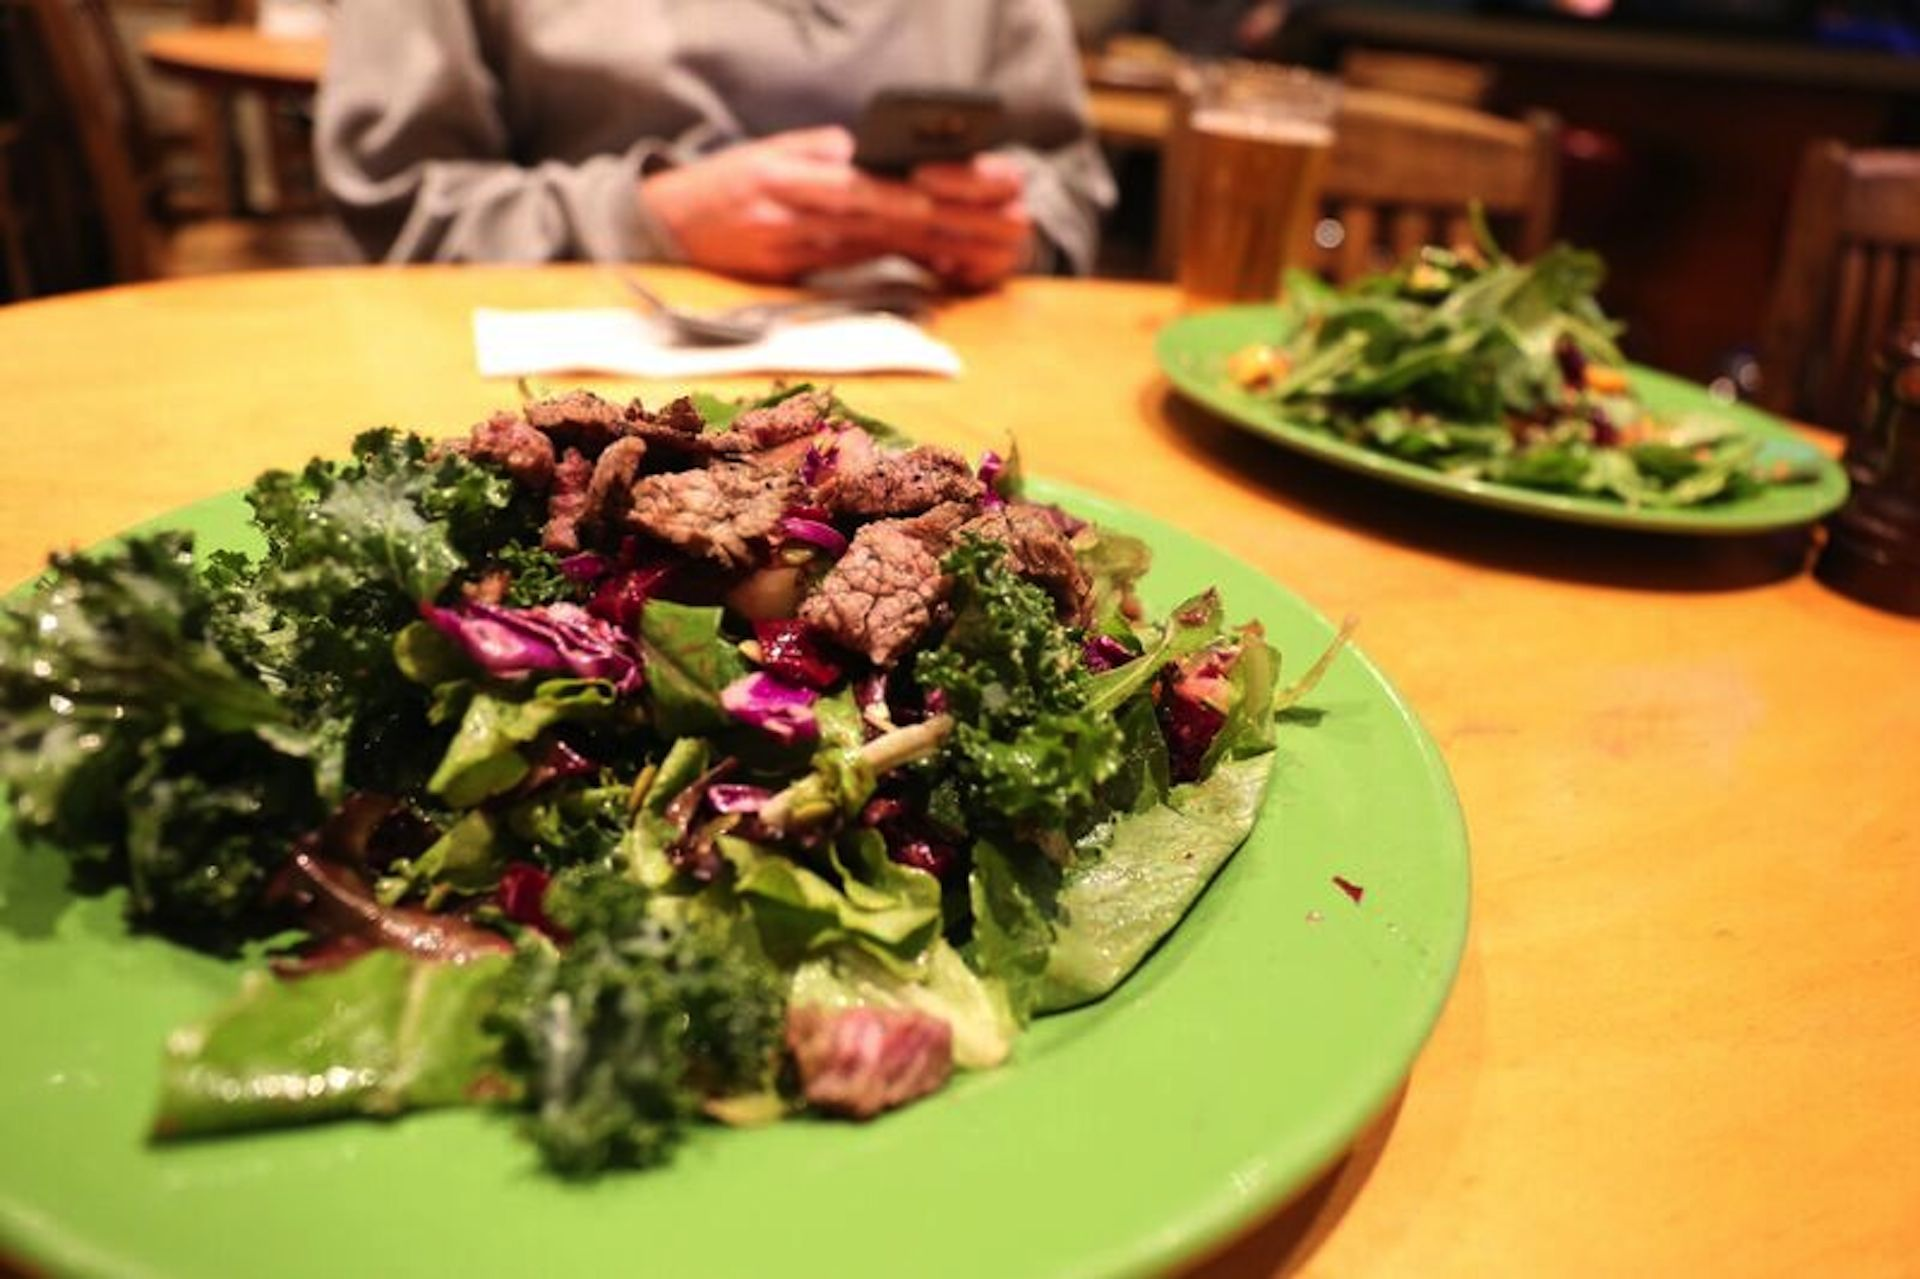 The Mars Detox salad with steak